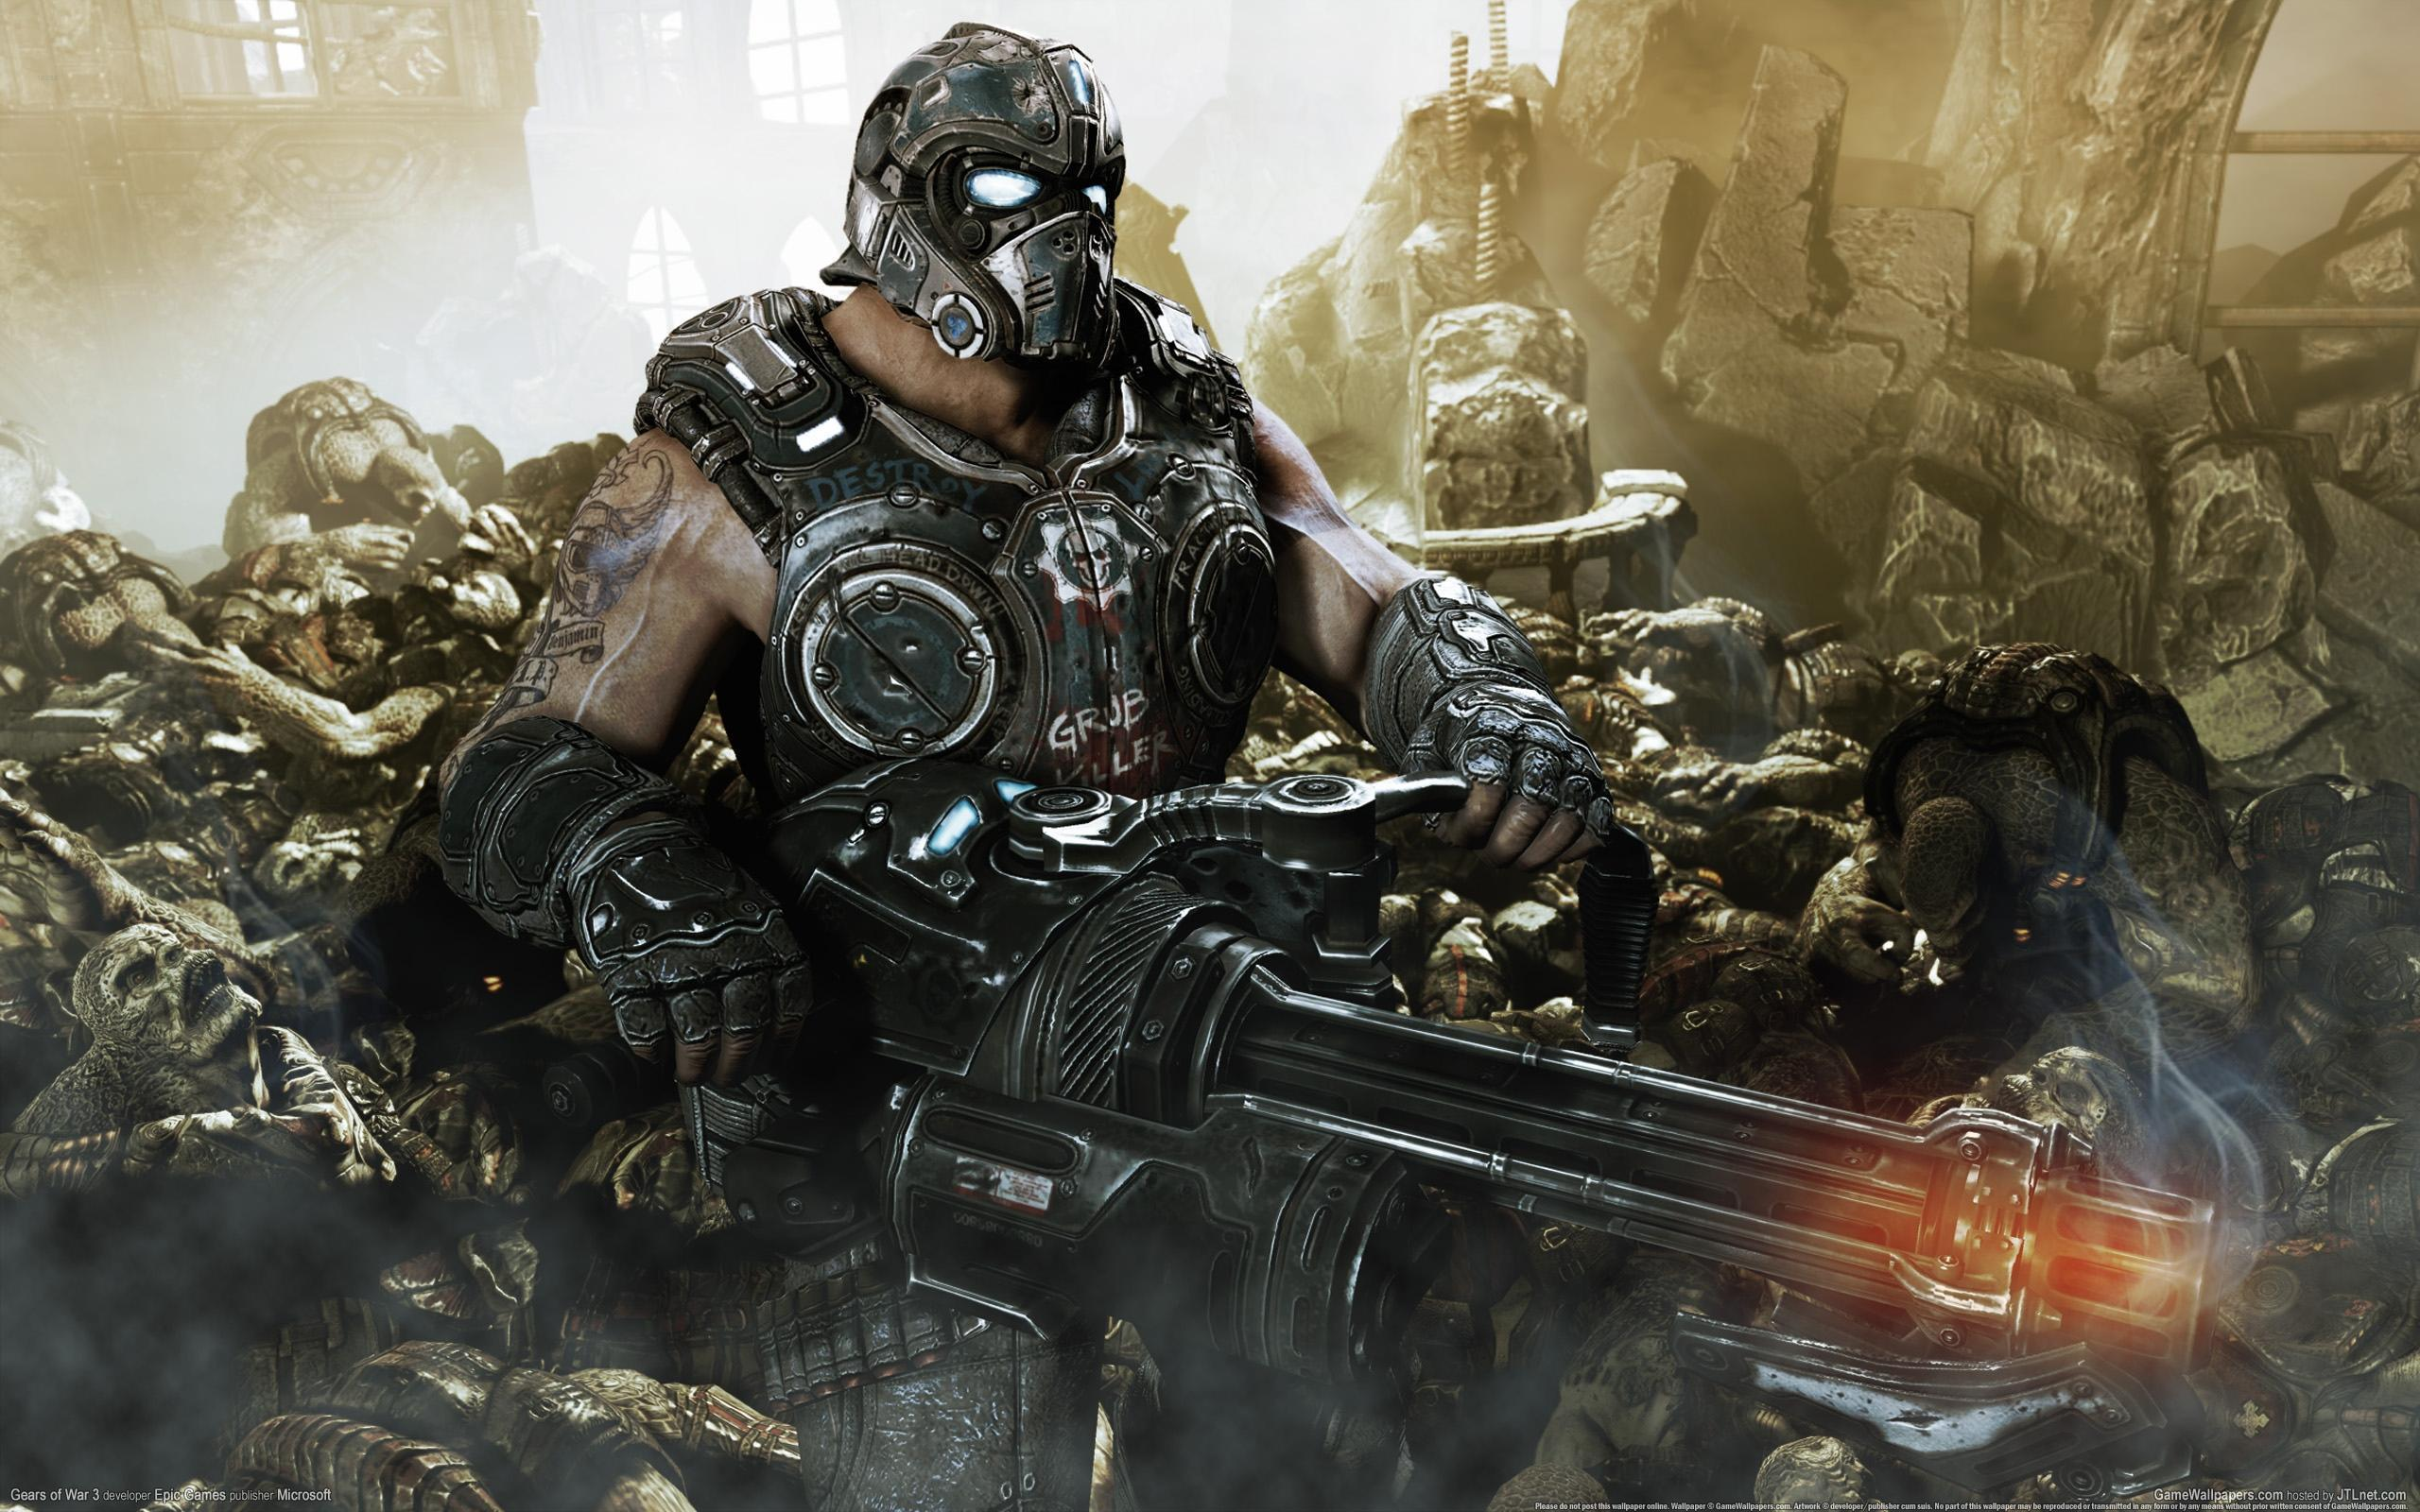 High quality wallpaper of gears of war image of 3 clayton carmine - Gears of war carmine wallpaper ...